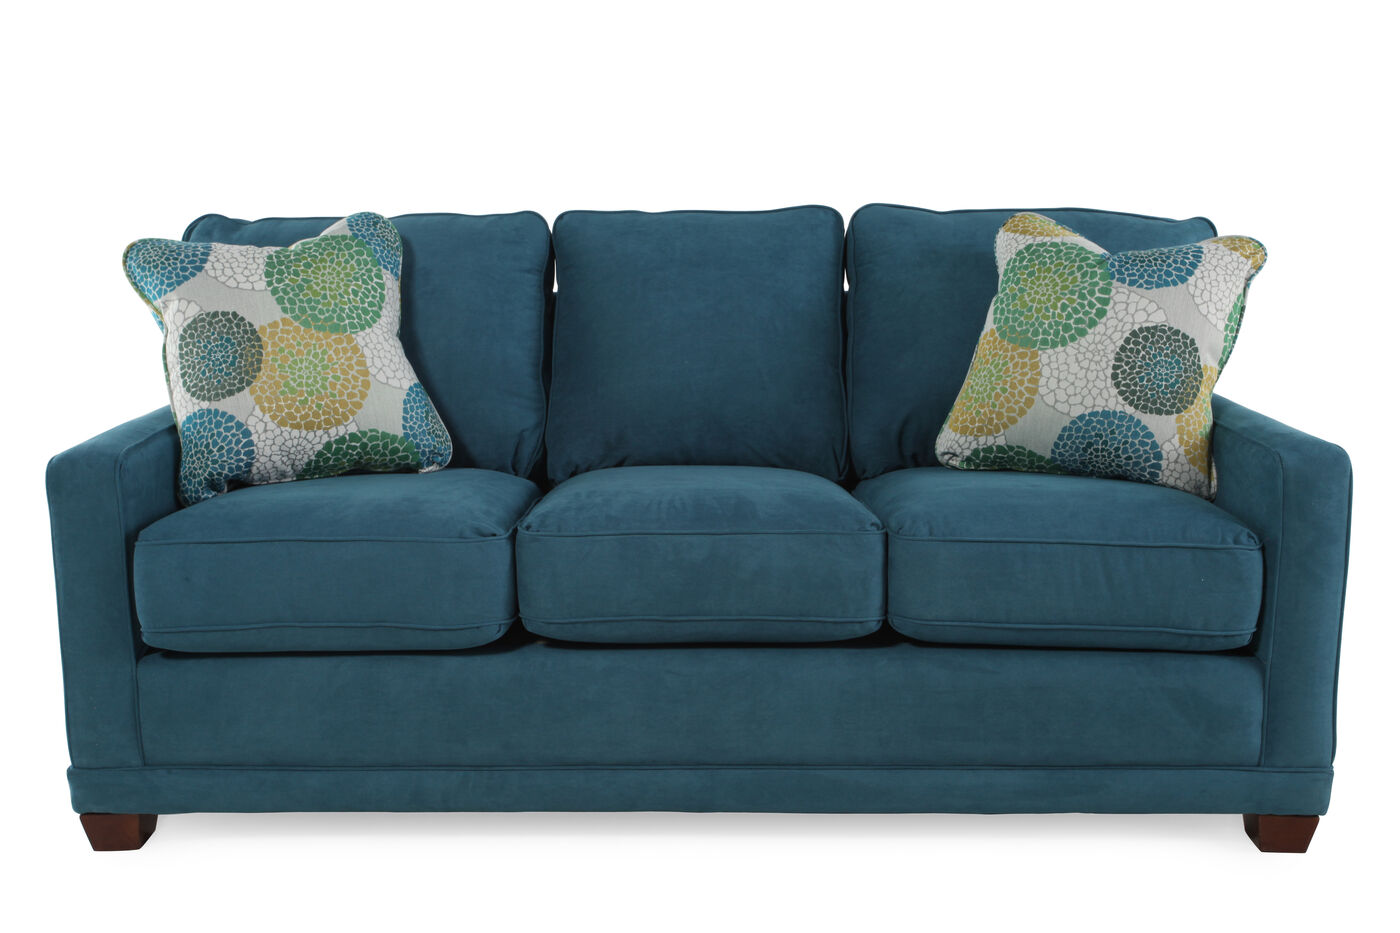 casual 77 sofa in teal mathis brothers furniture. Black Bedroom Furniture Sets. Home Design Ideas